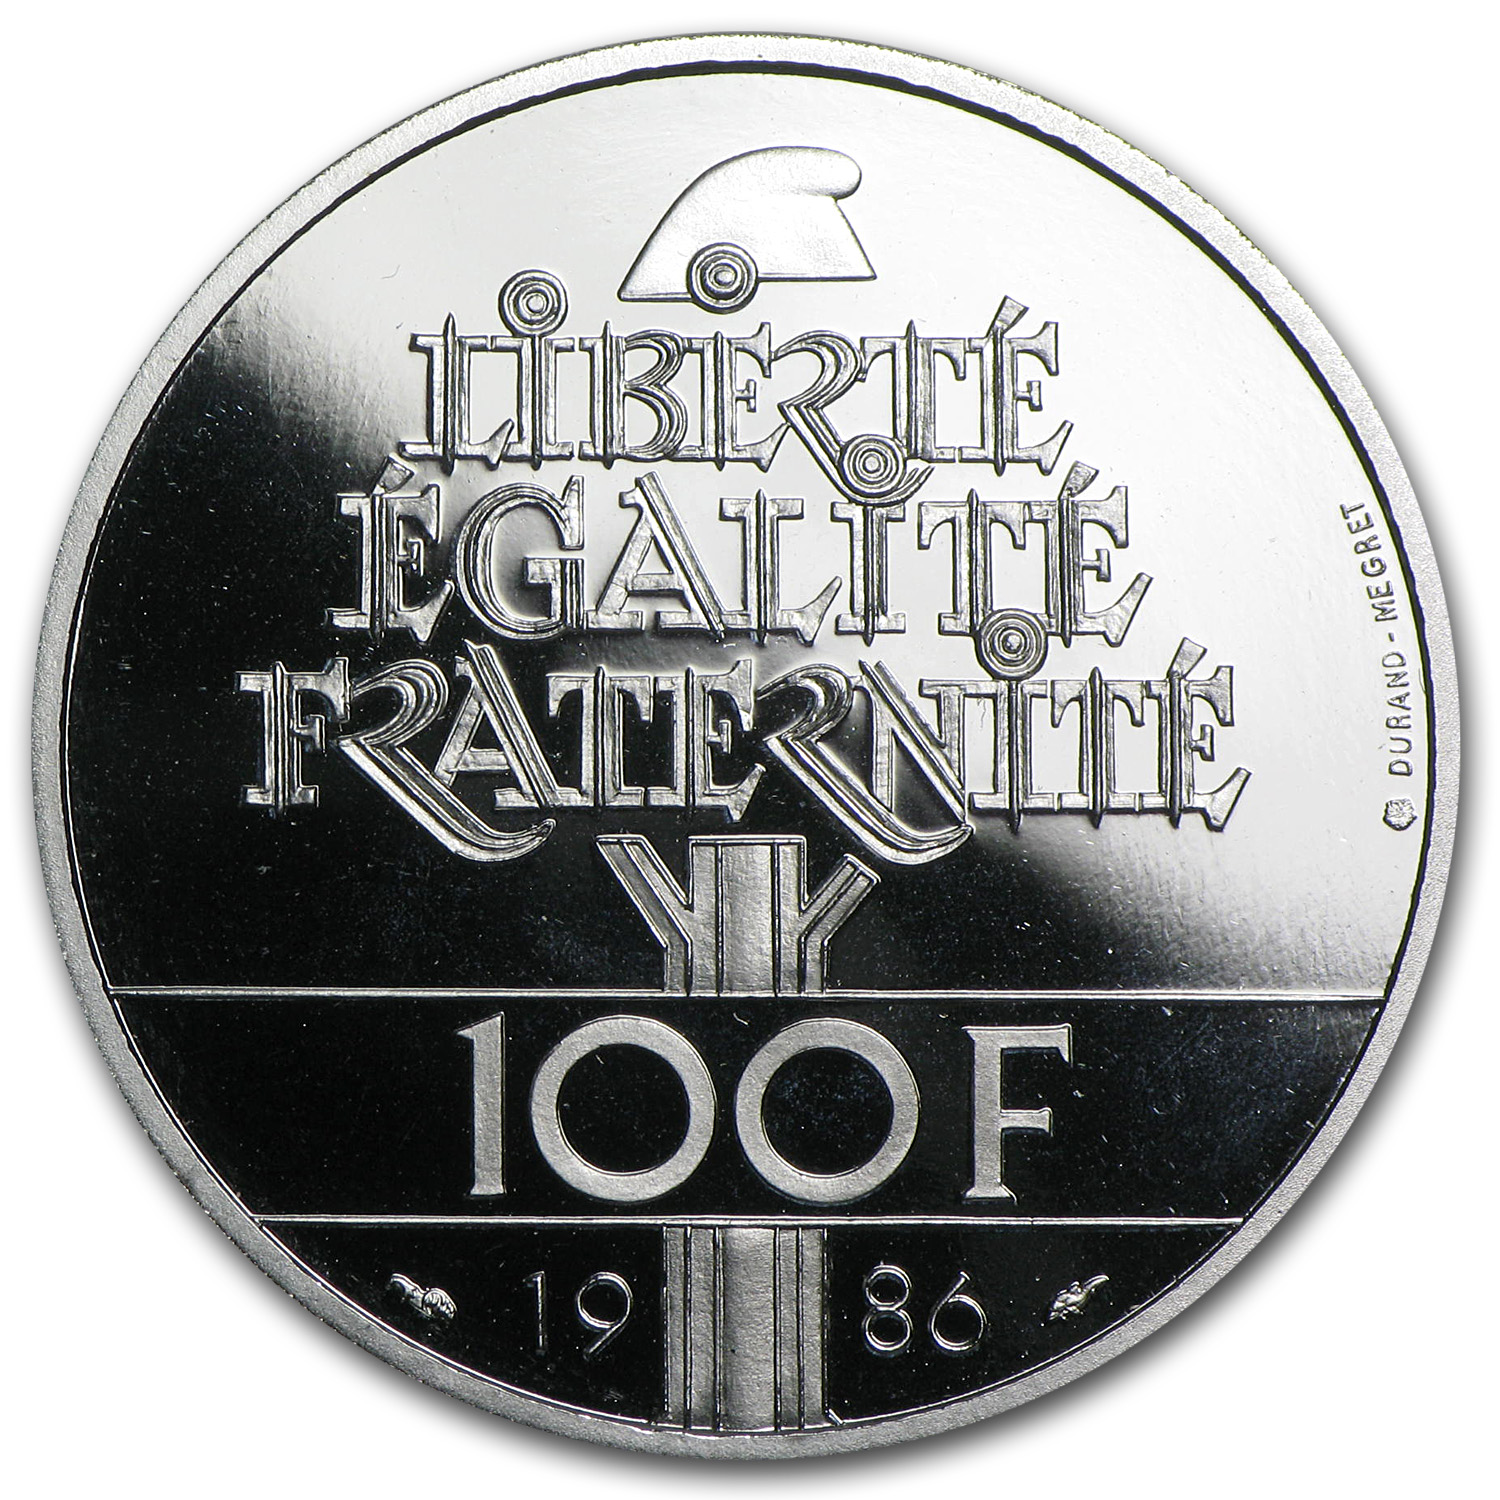 1986 100 Francs Proof Statue of Liberty Platinum Coin APW .6430